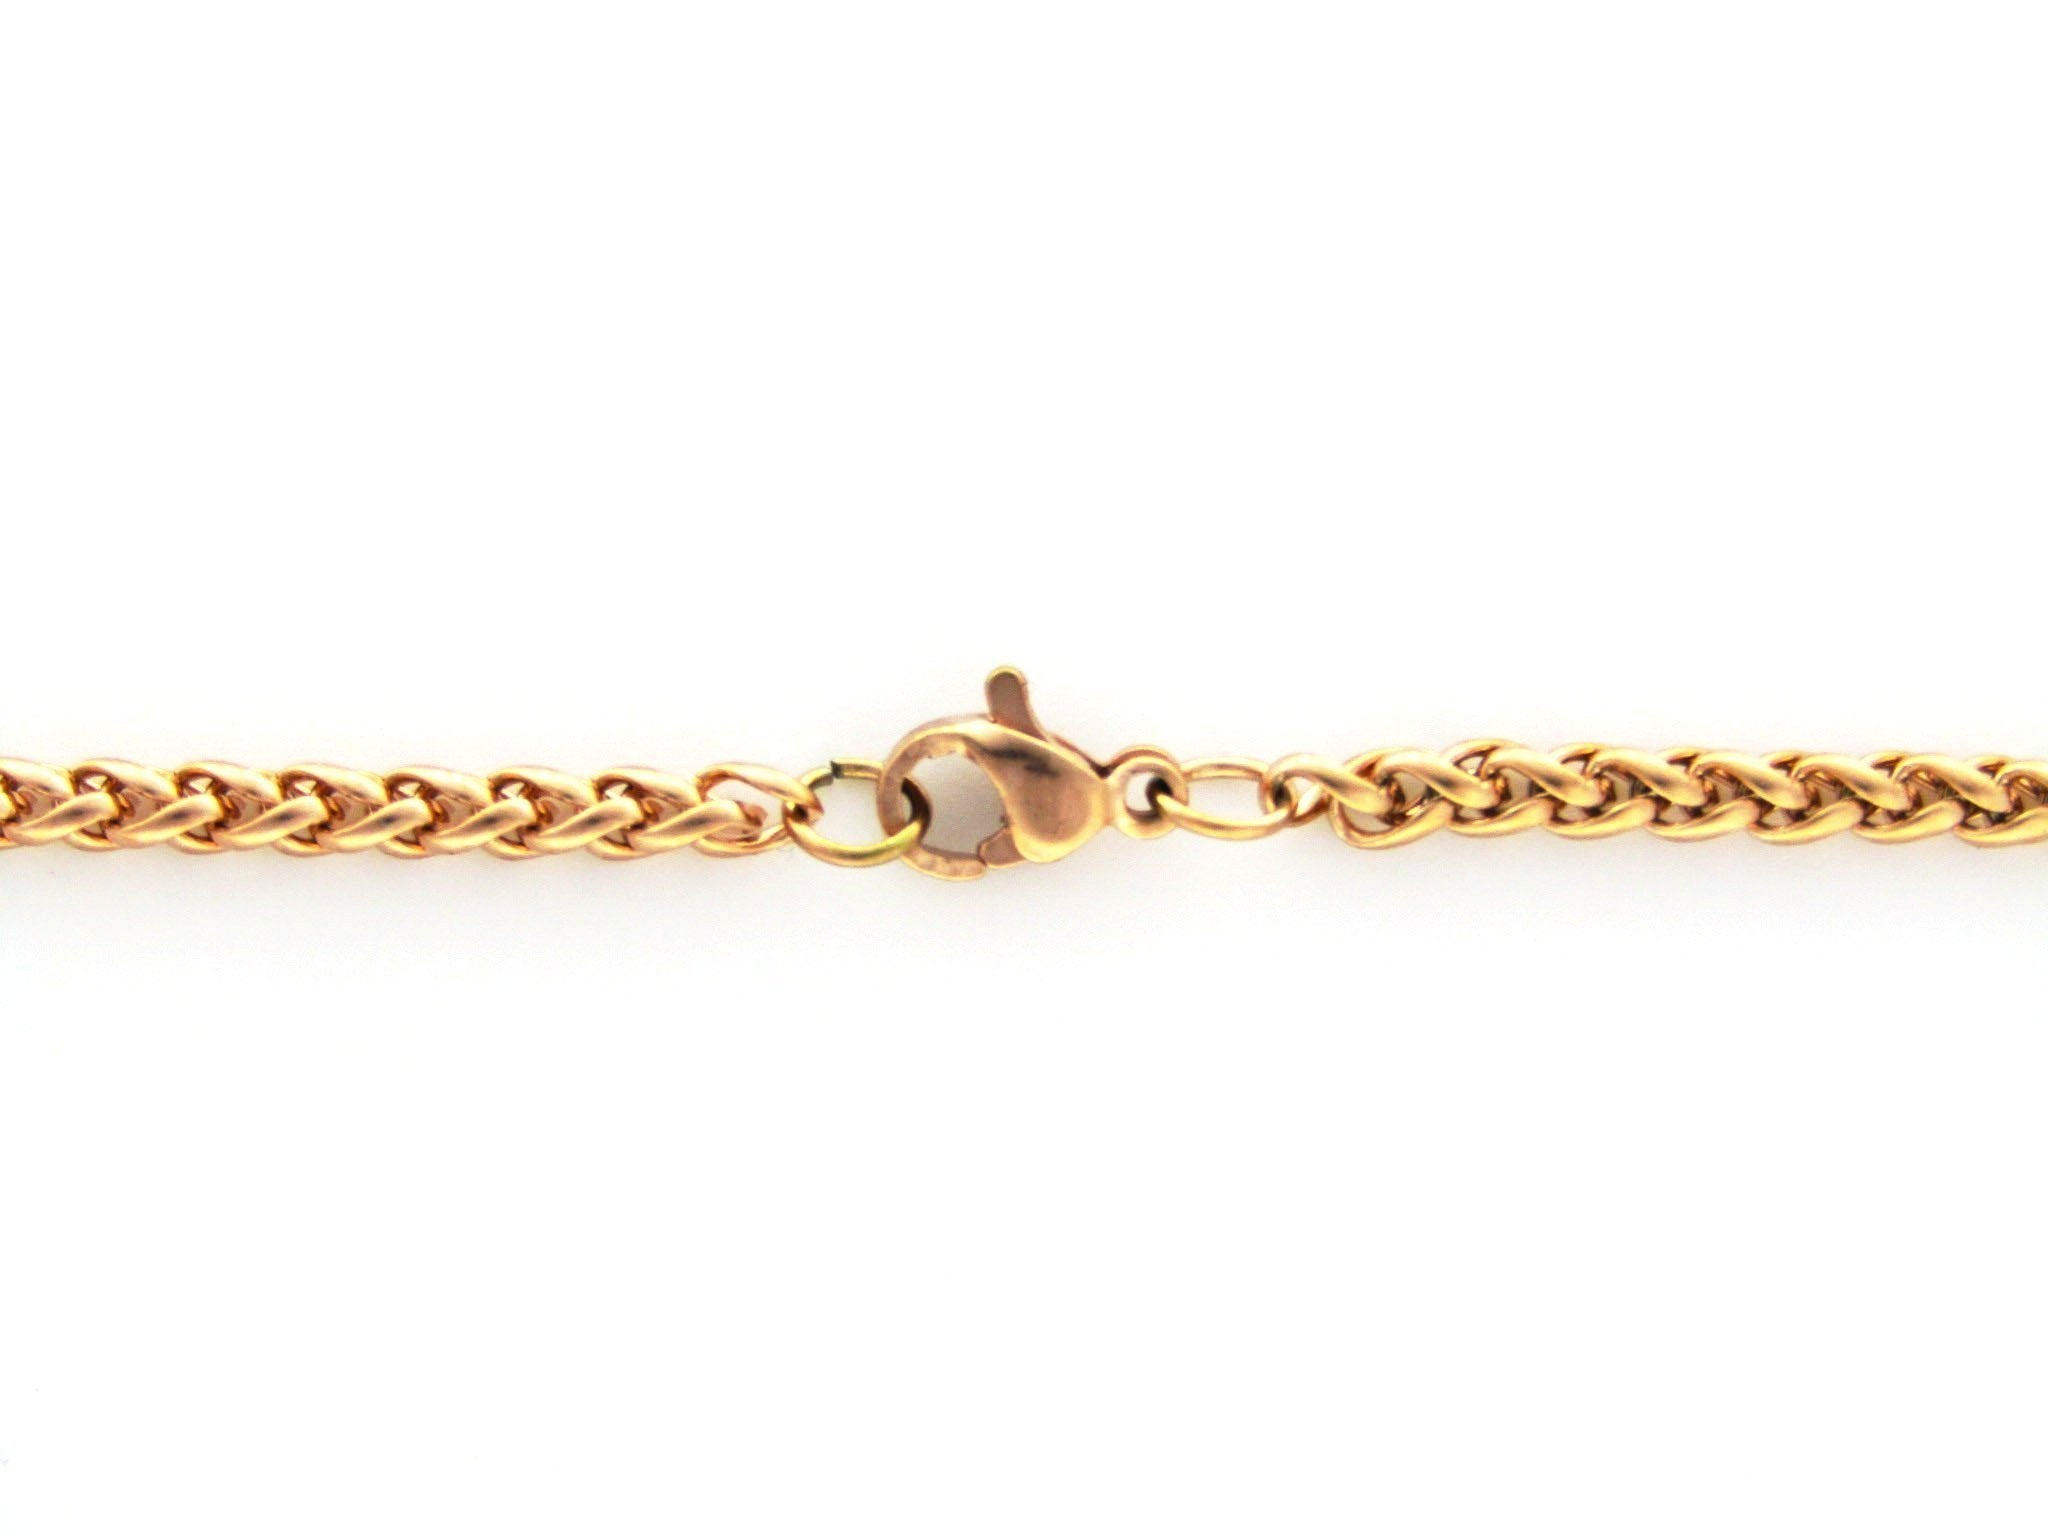 Koral Rose Gold - MarcOcean  - jewellery  - necklace  - anchor